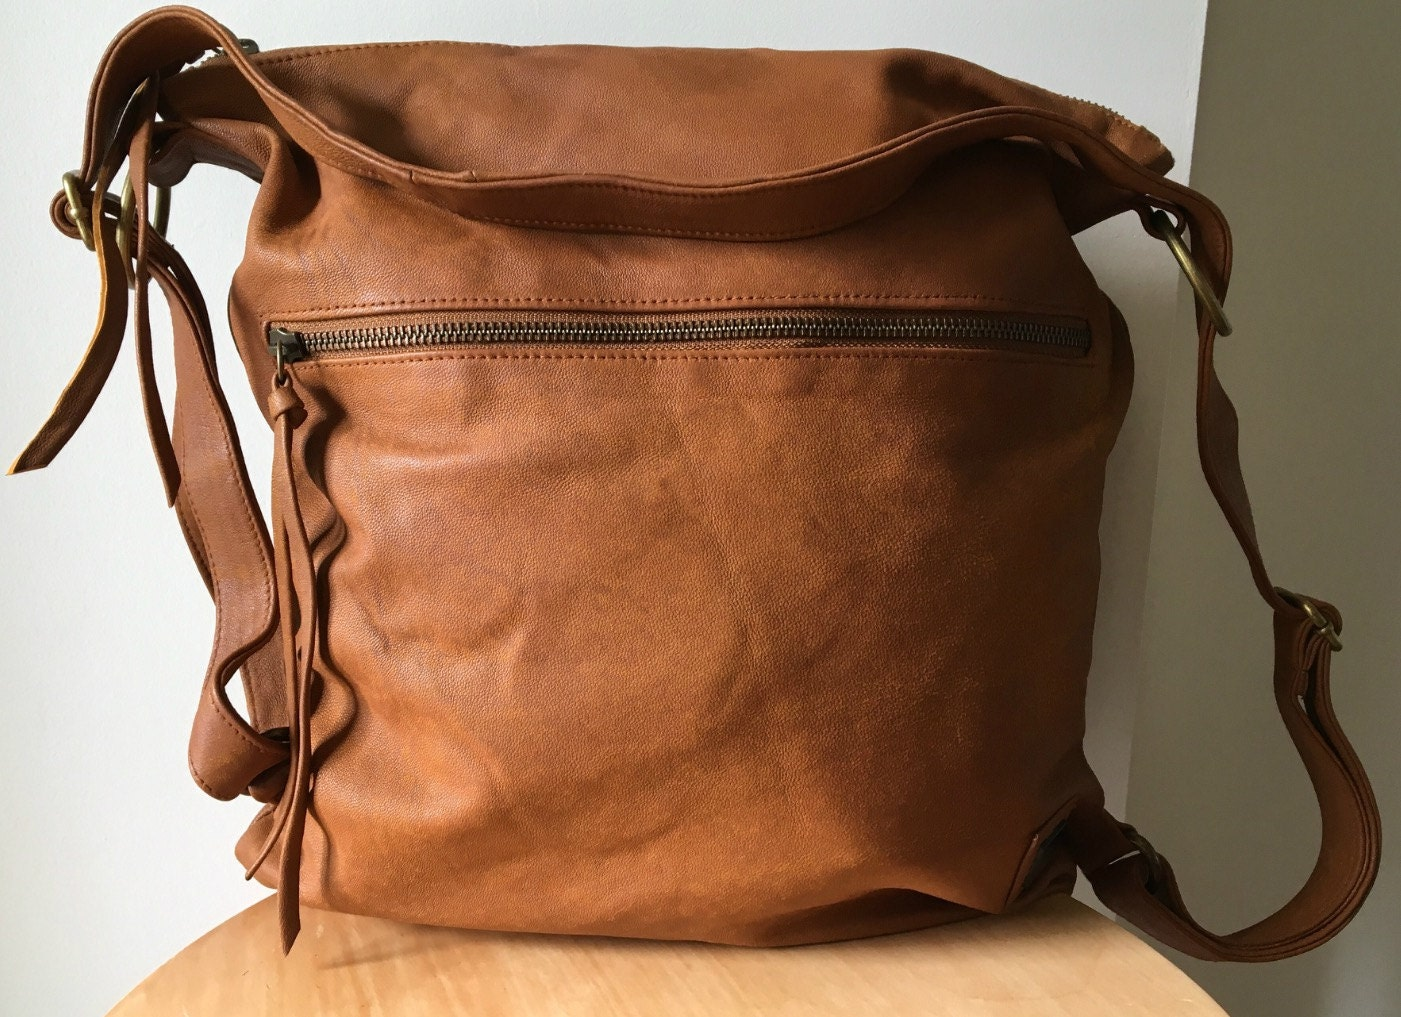 Backpack convertible leather bag.Real leather rucksack or ...